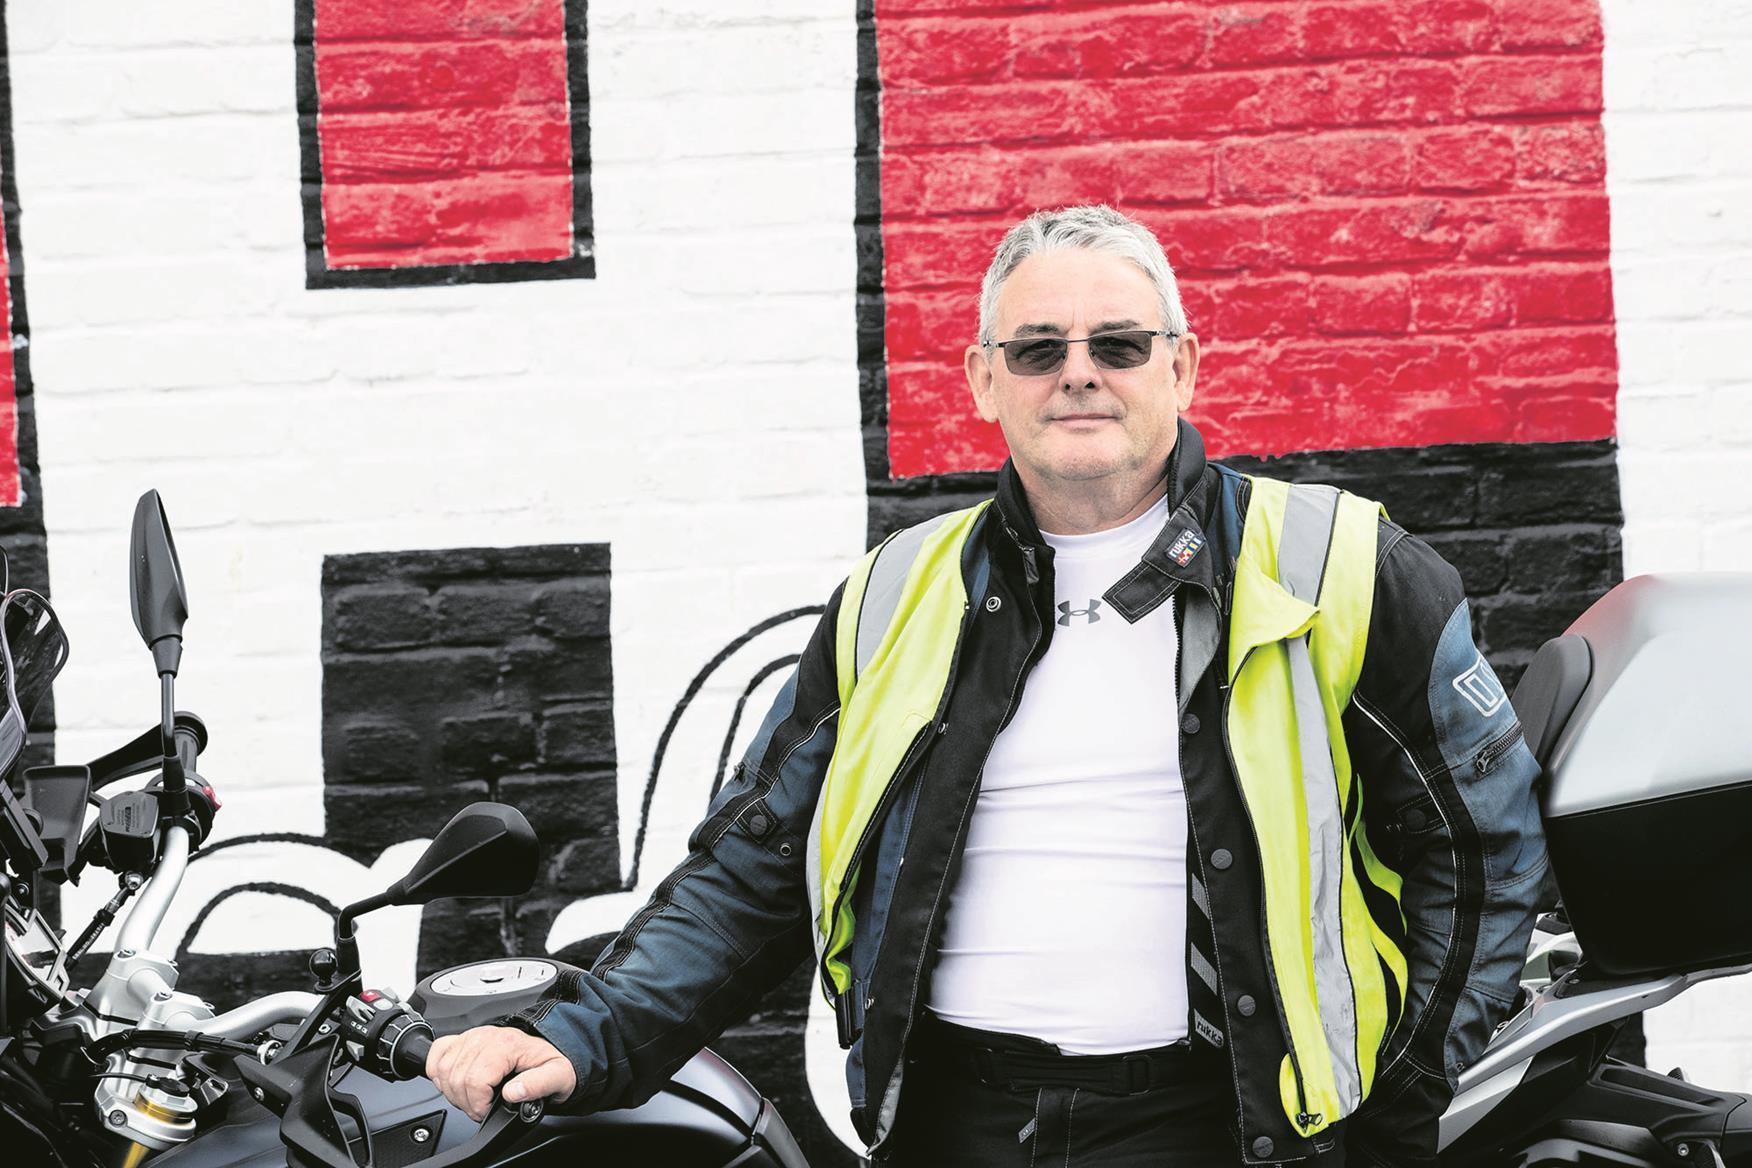 Nigel Robinson: 'It embodies what motorcycling is all about'